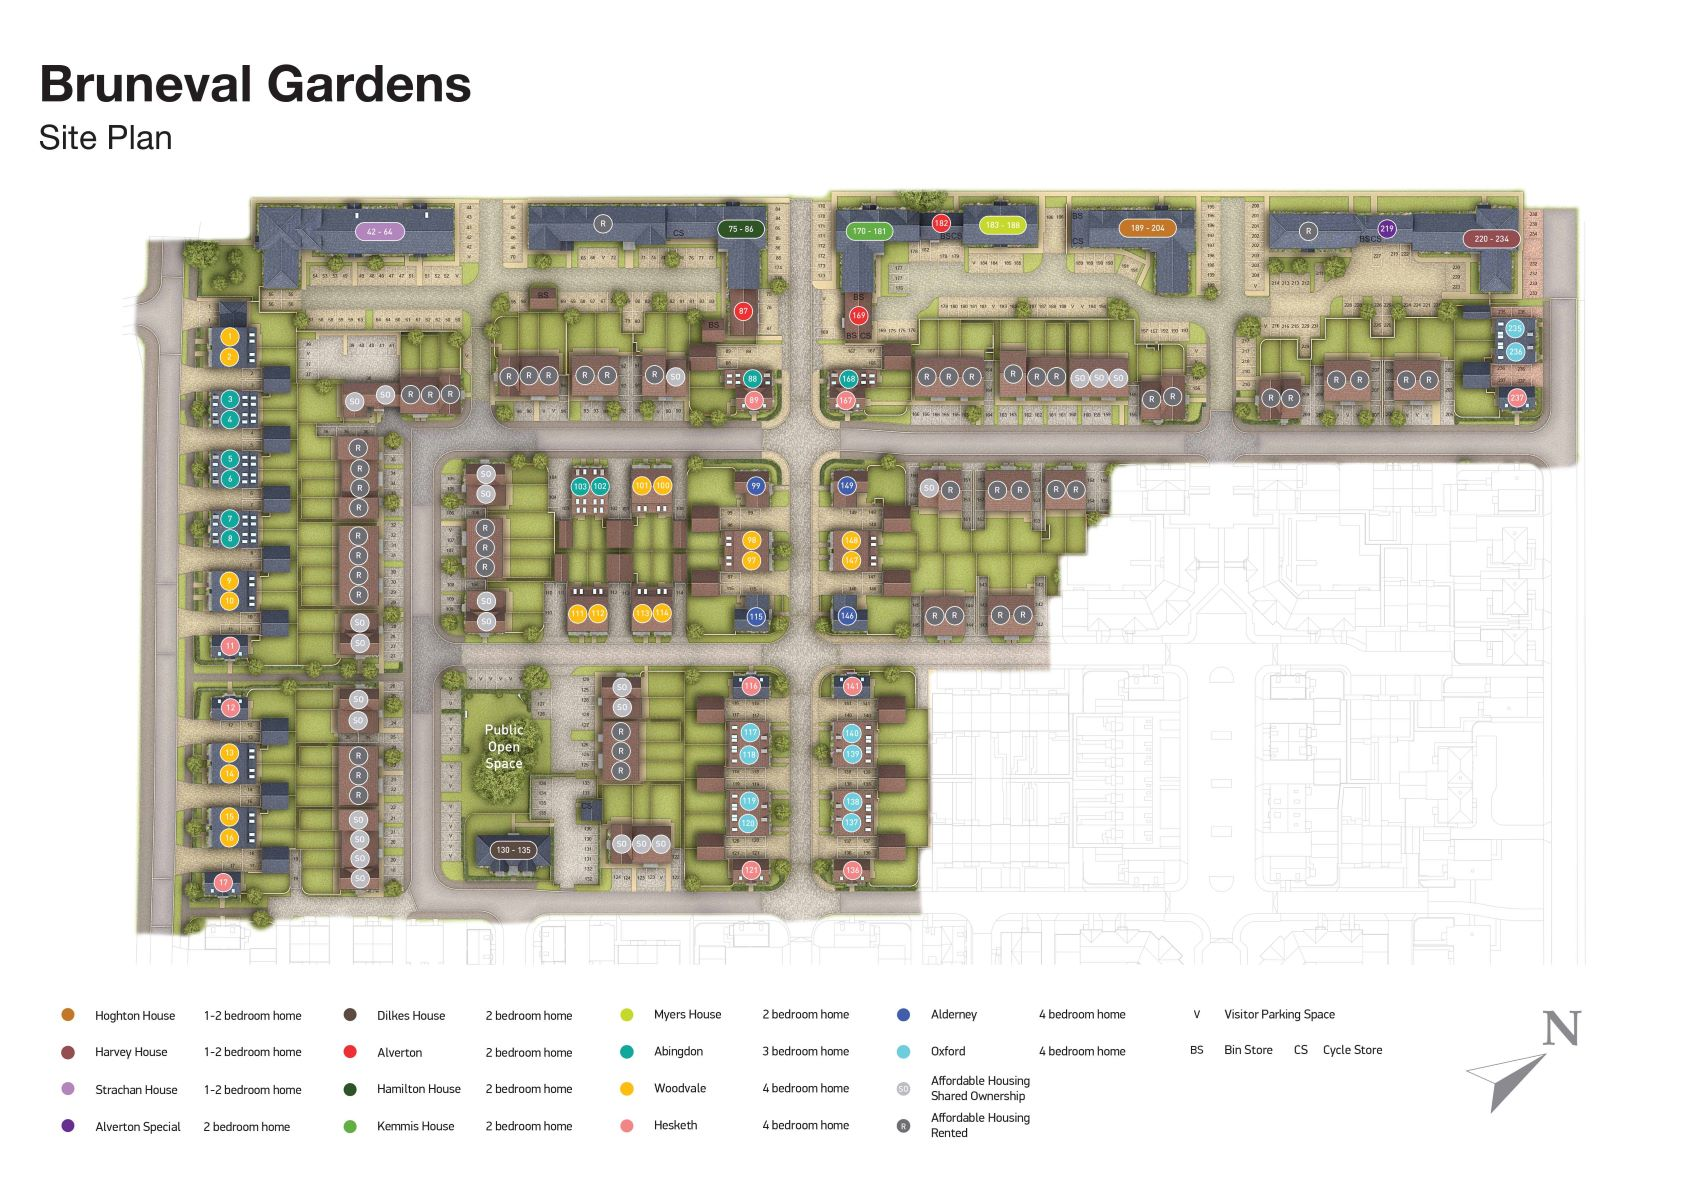 Bruneval Gardens Site Map